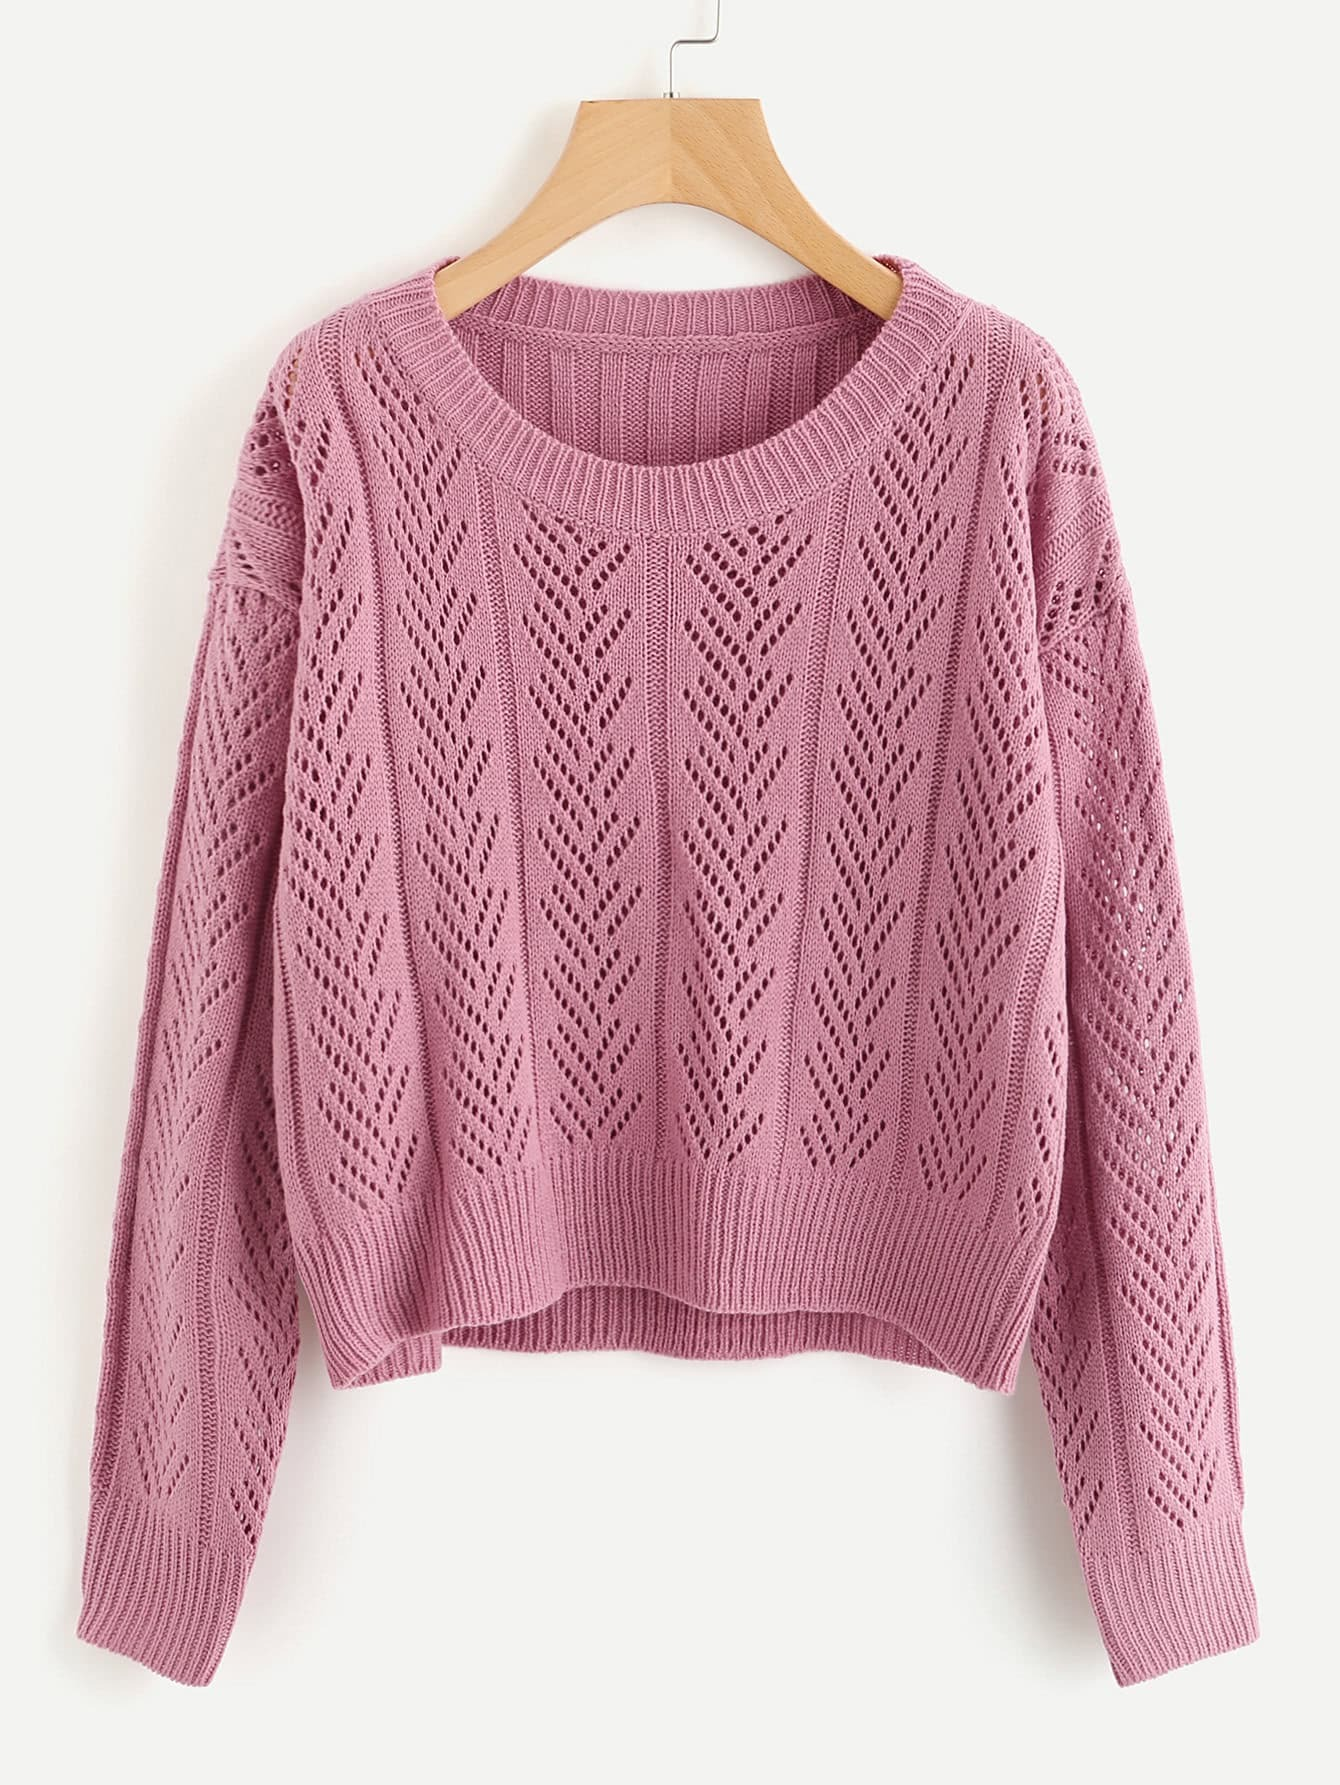 Ribbed Back Hollow Out Sweater sweater170831468